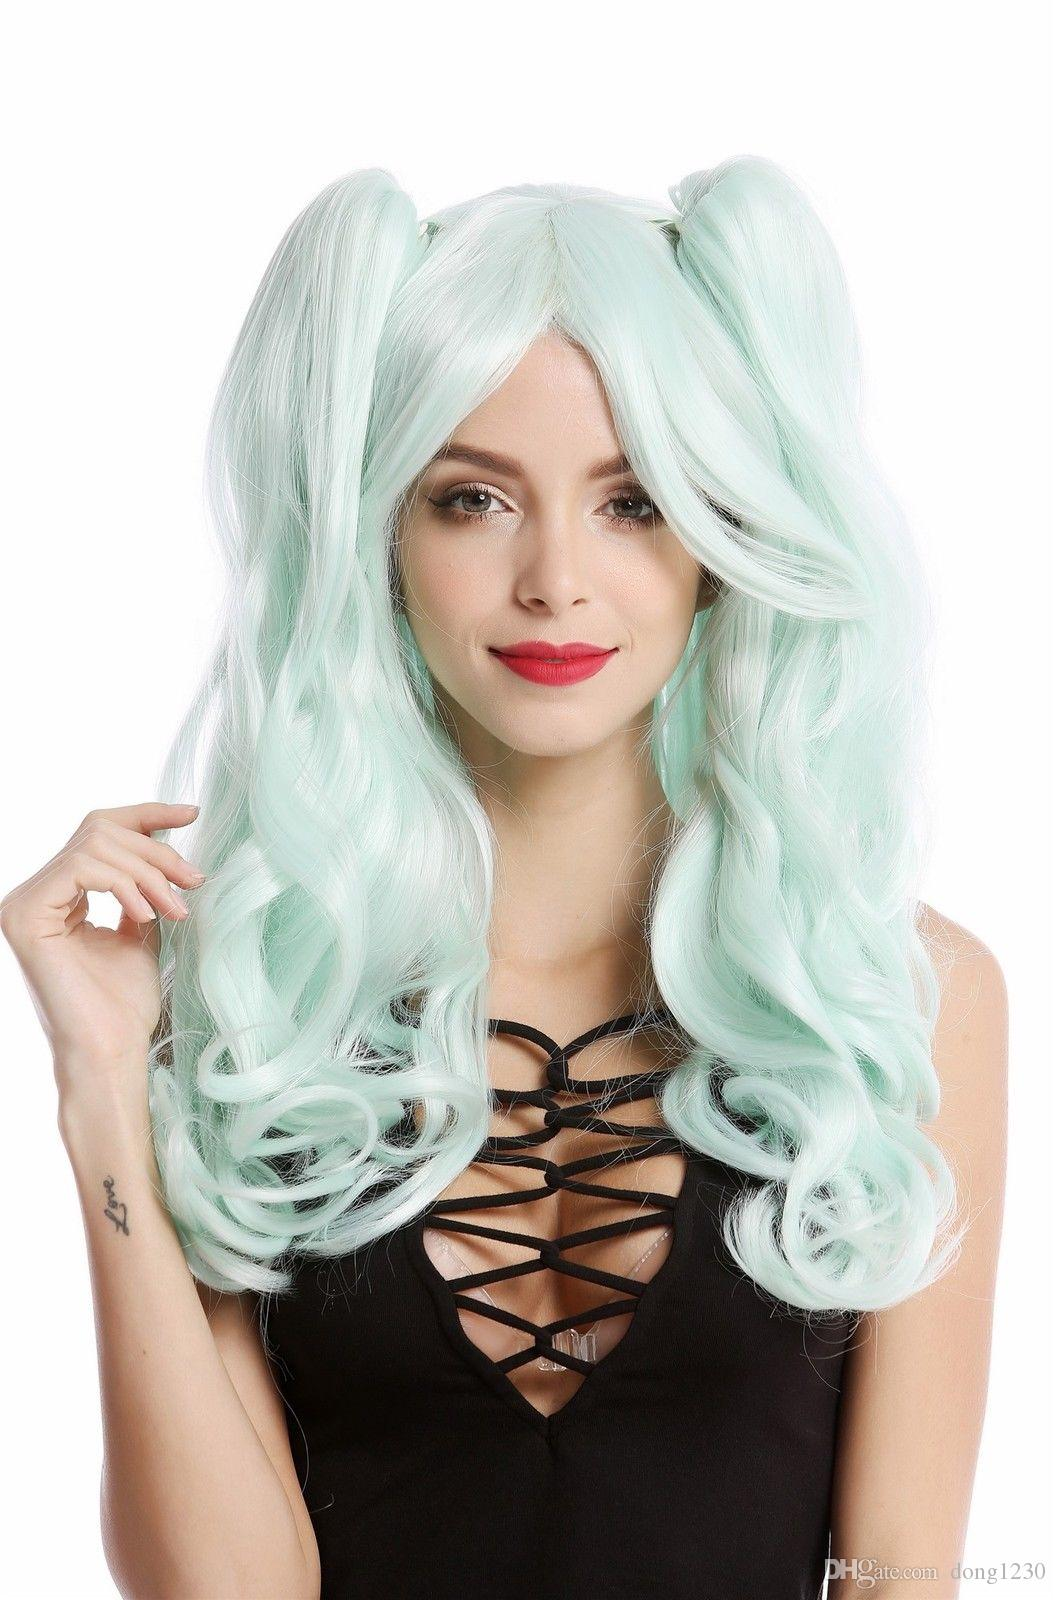 Ladies  Wig Cosplay 2 Braids Long Wavy Gothic Lolita Japan Mint Green Wigs  Online Cheap Synthetic Wigs From Dong1230 e4af990289a5